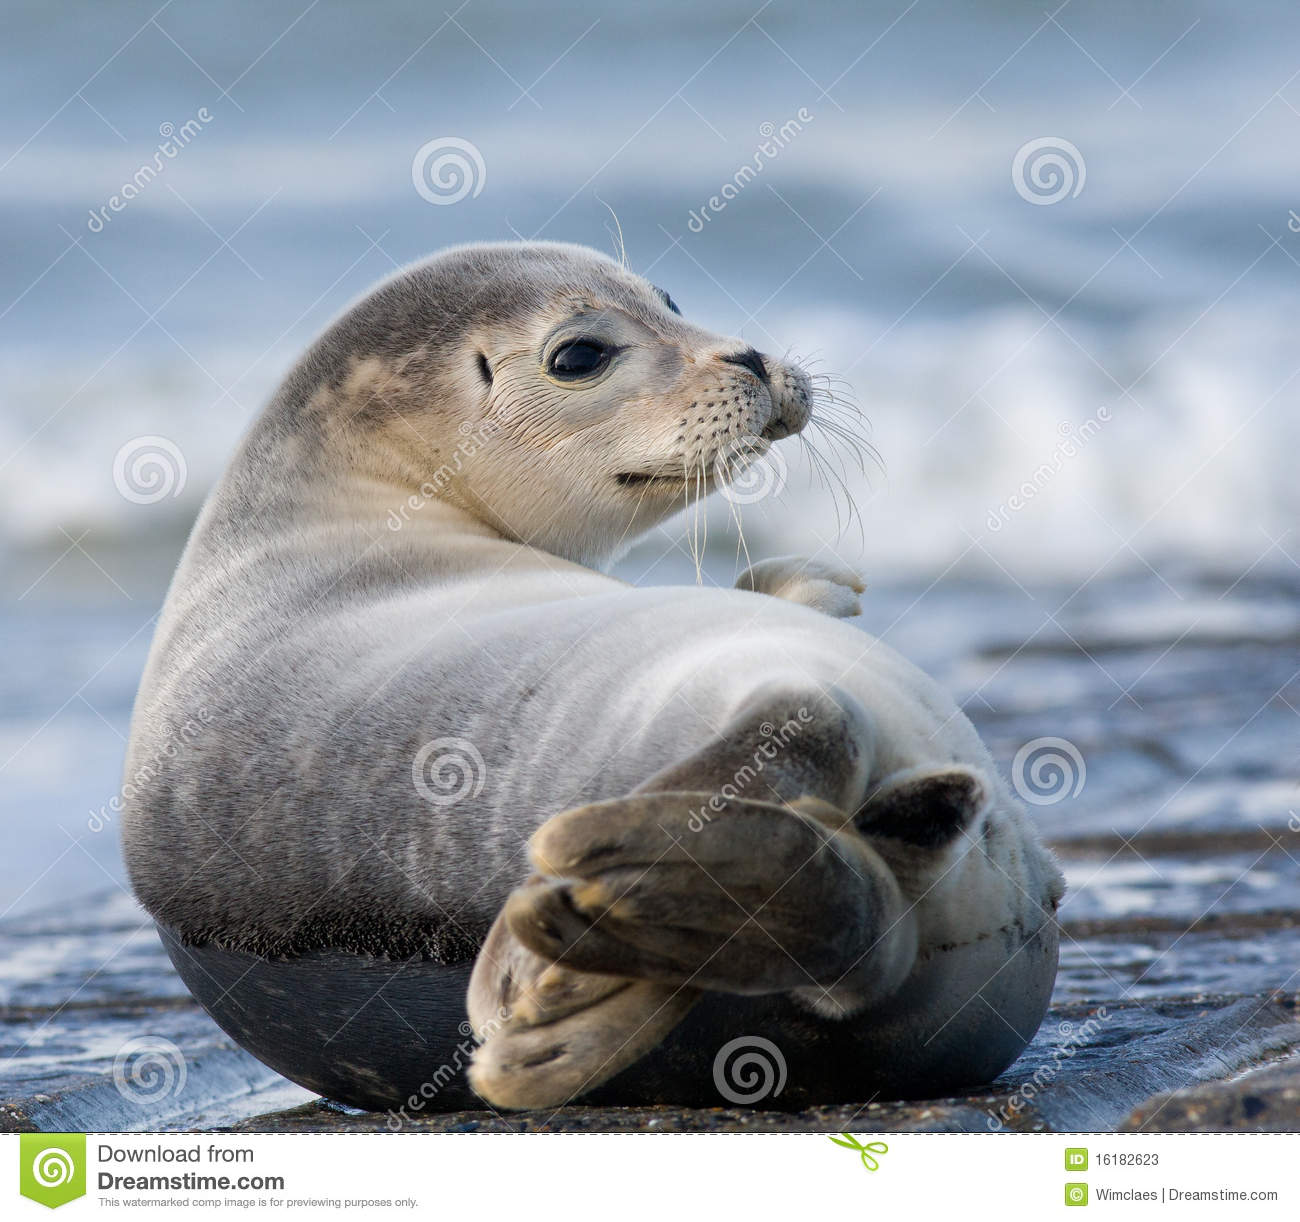 seal harbor online dating Our popular seal program is fully booked through may 2018 please check back soon for more available dates come meet our charming harbor seals.